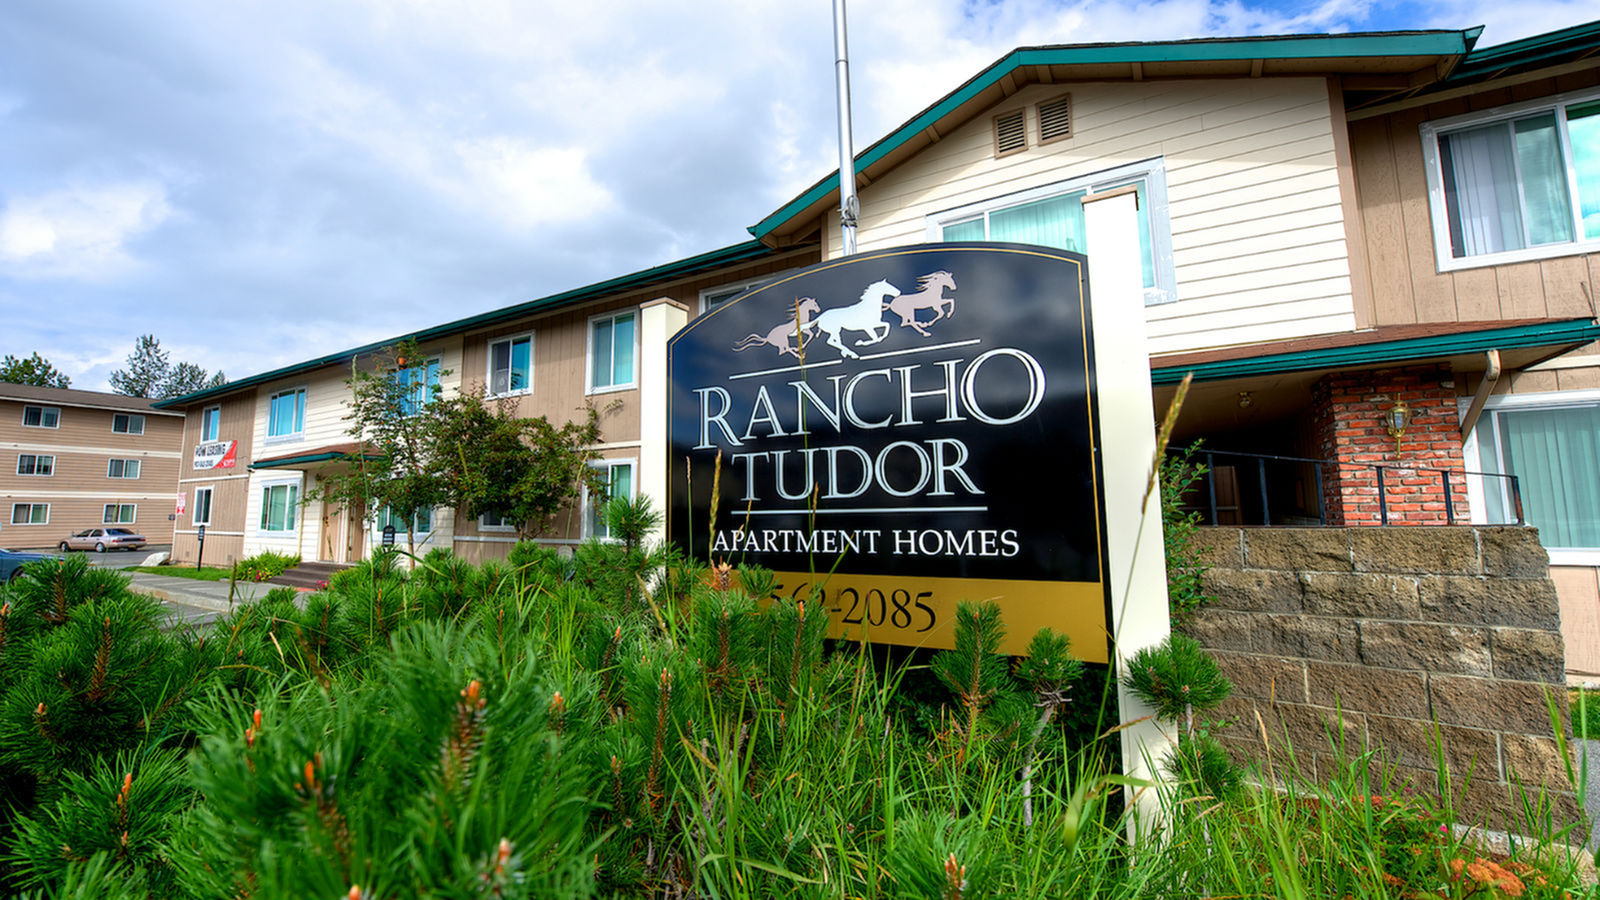 Rancho Tudor Apartment Homes